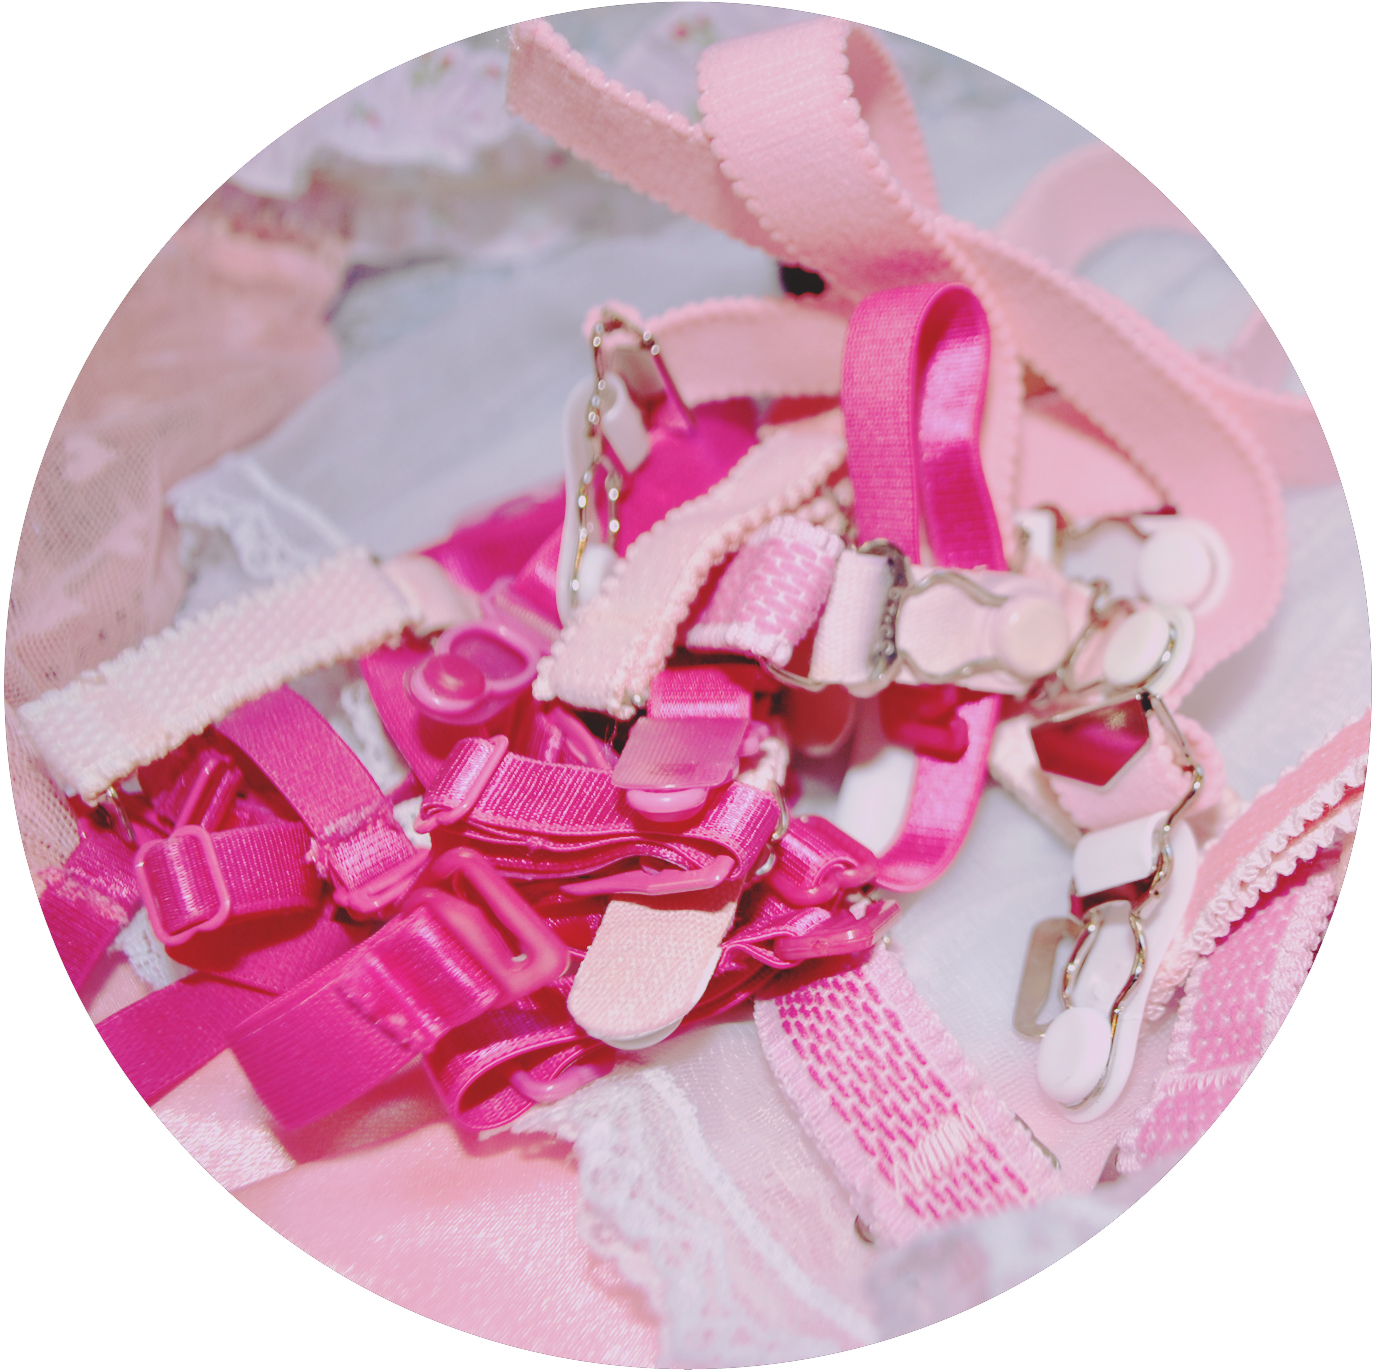 Hot Pink Satin Garters and Vintage Pink Garters